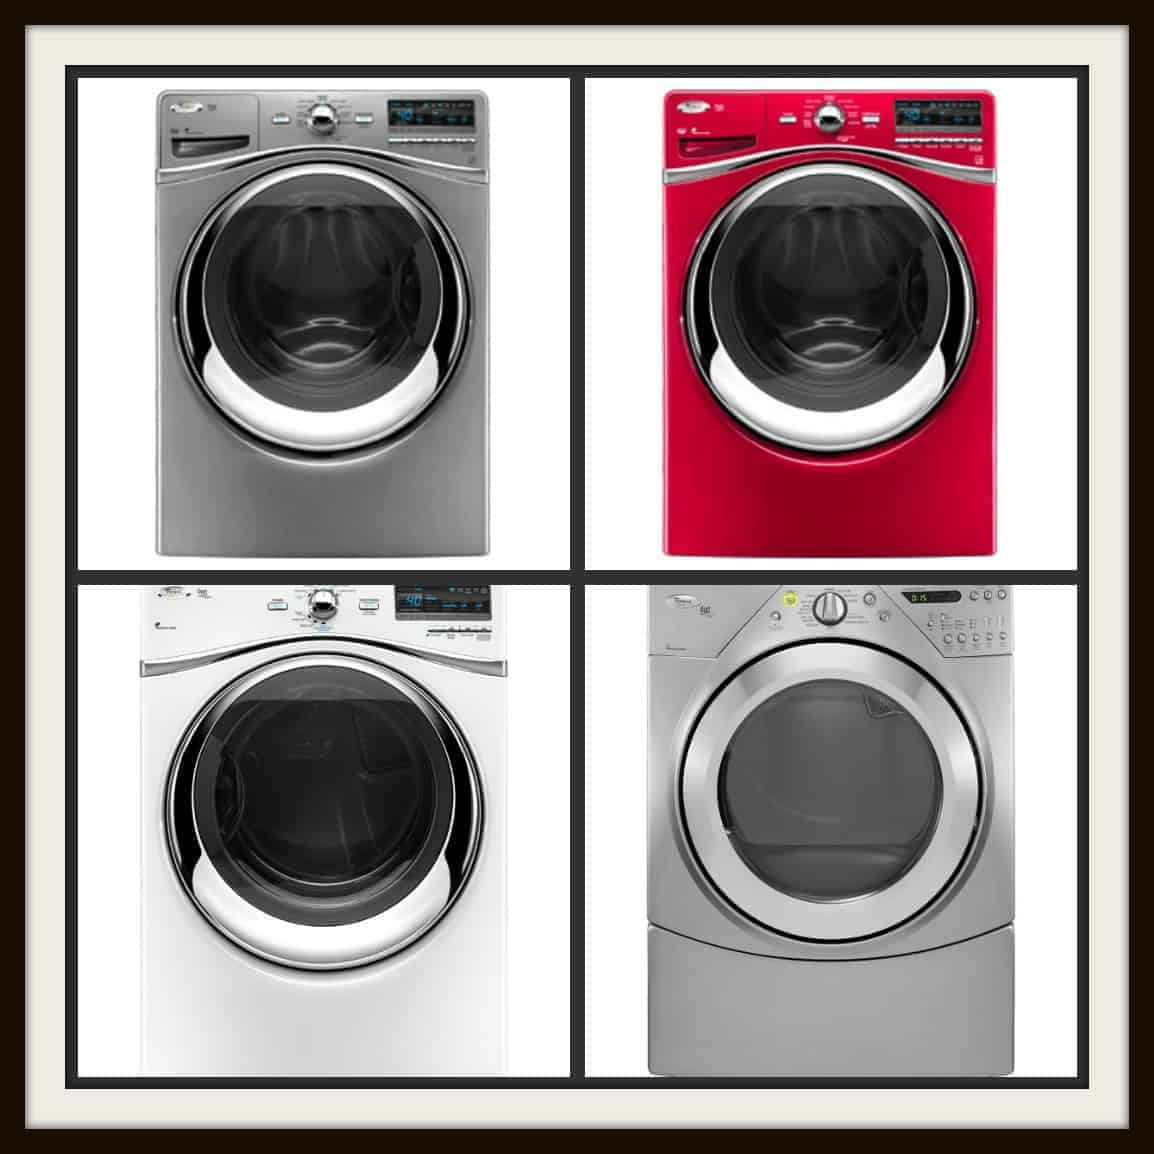 Best Top Loading Washing Machine >> Final Thoughts on Whirlpool Duet Washer and Dryer # ...